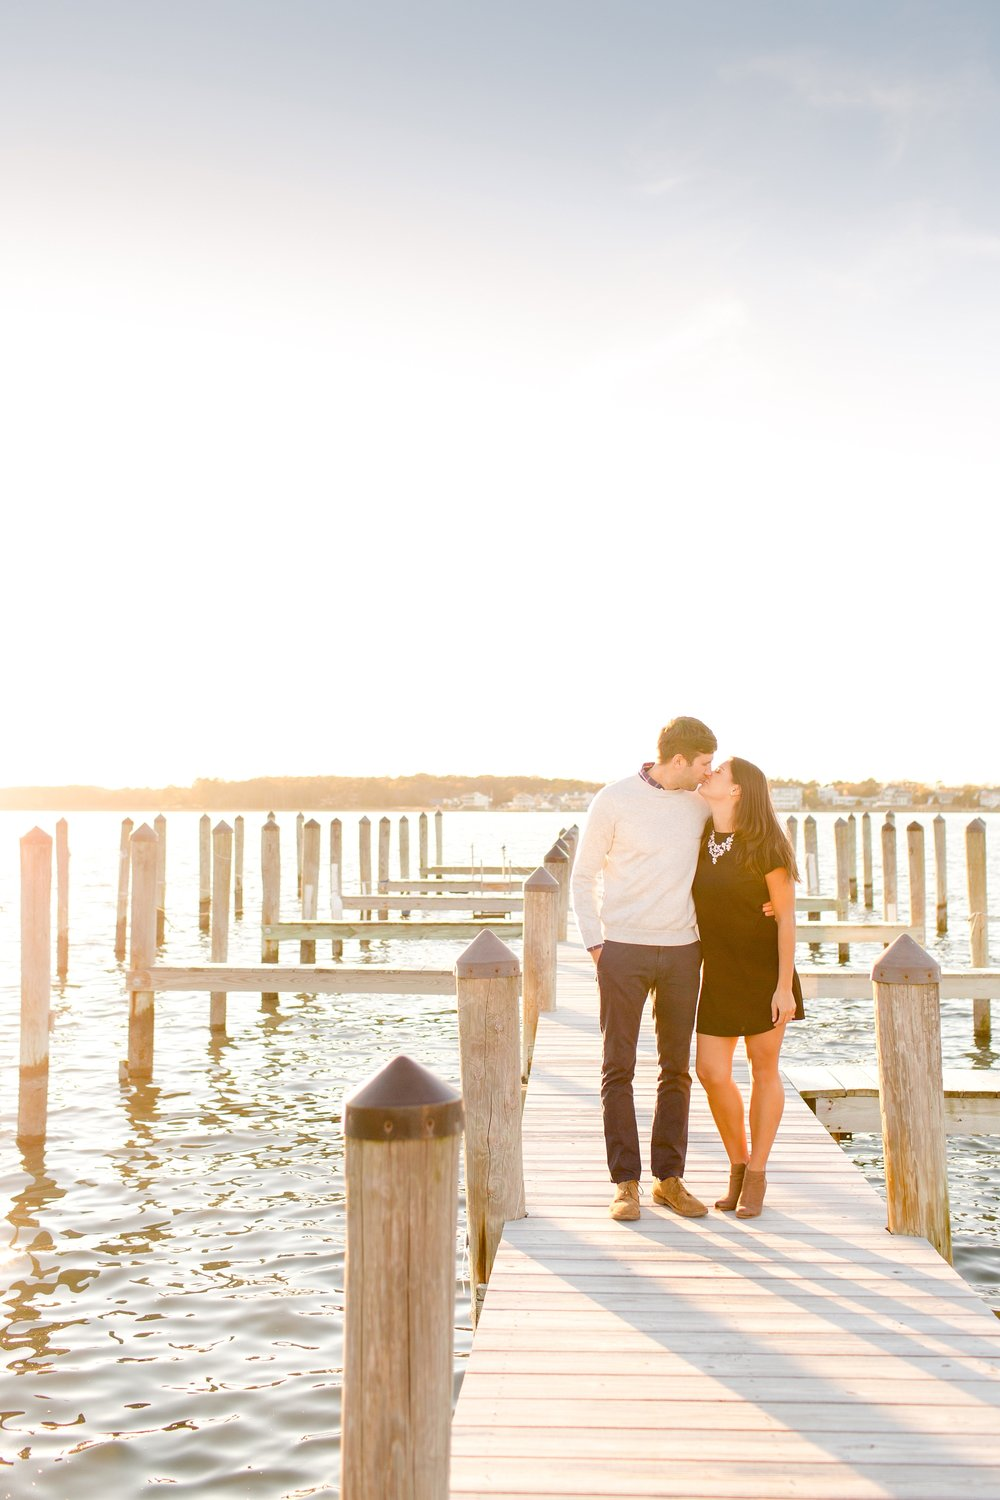 Katie & Chris Engagement-416_anna grace photography bethany beach engagement photographer photo.jpg